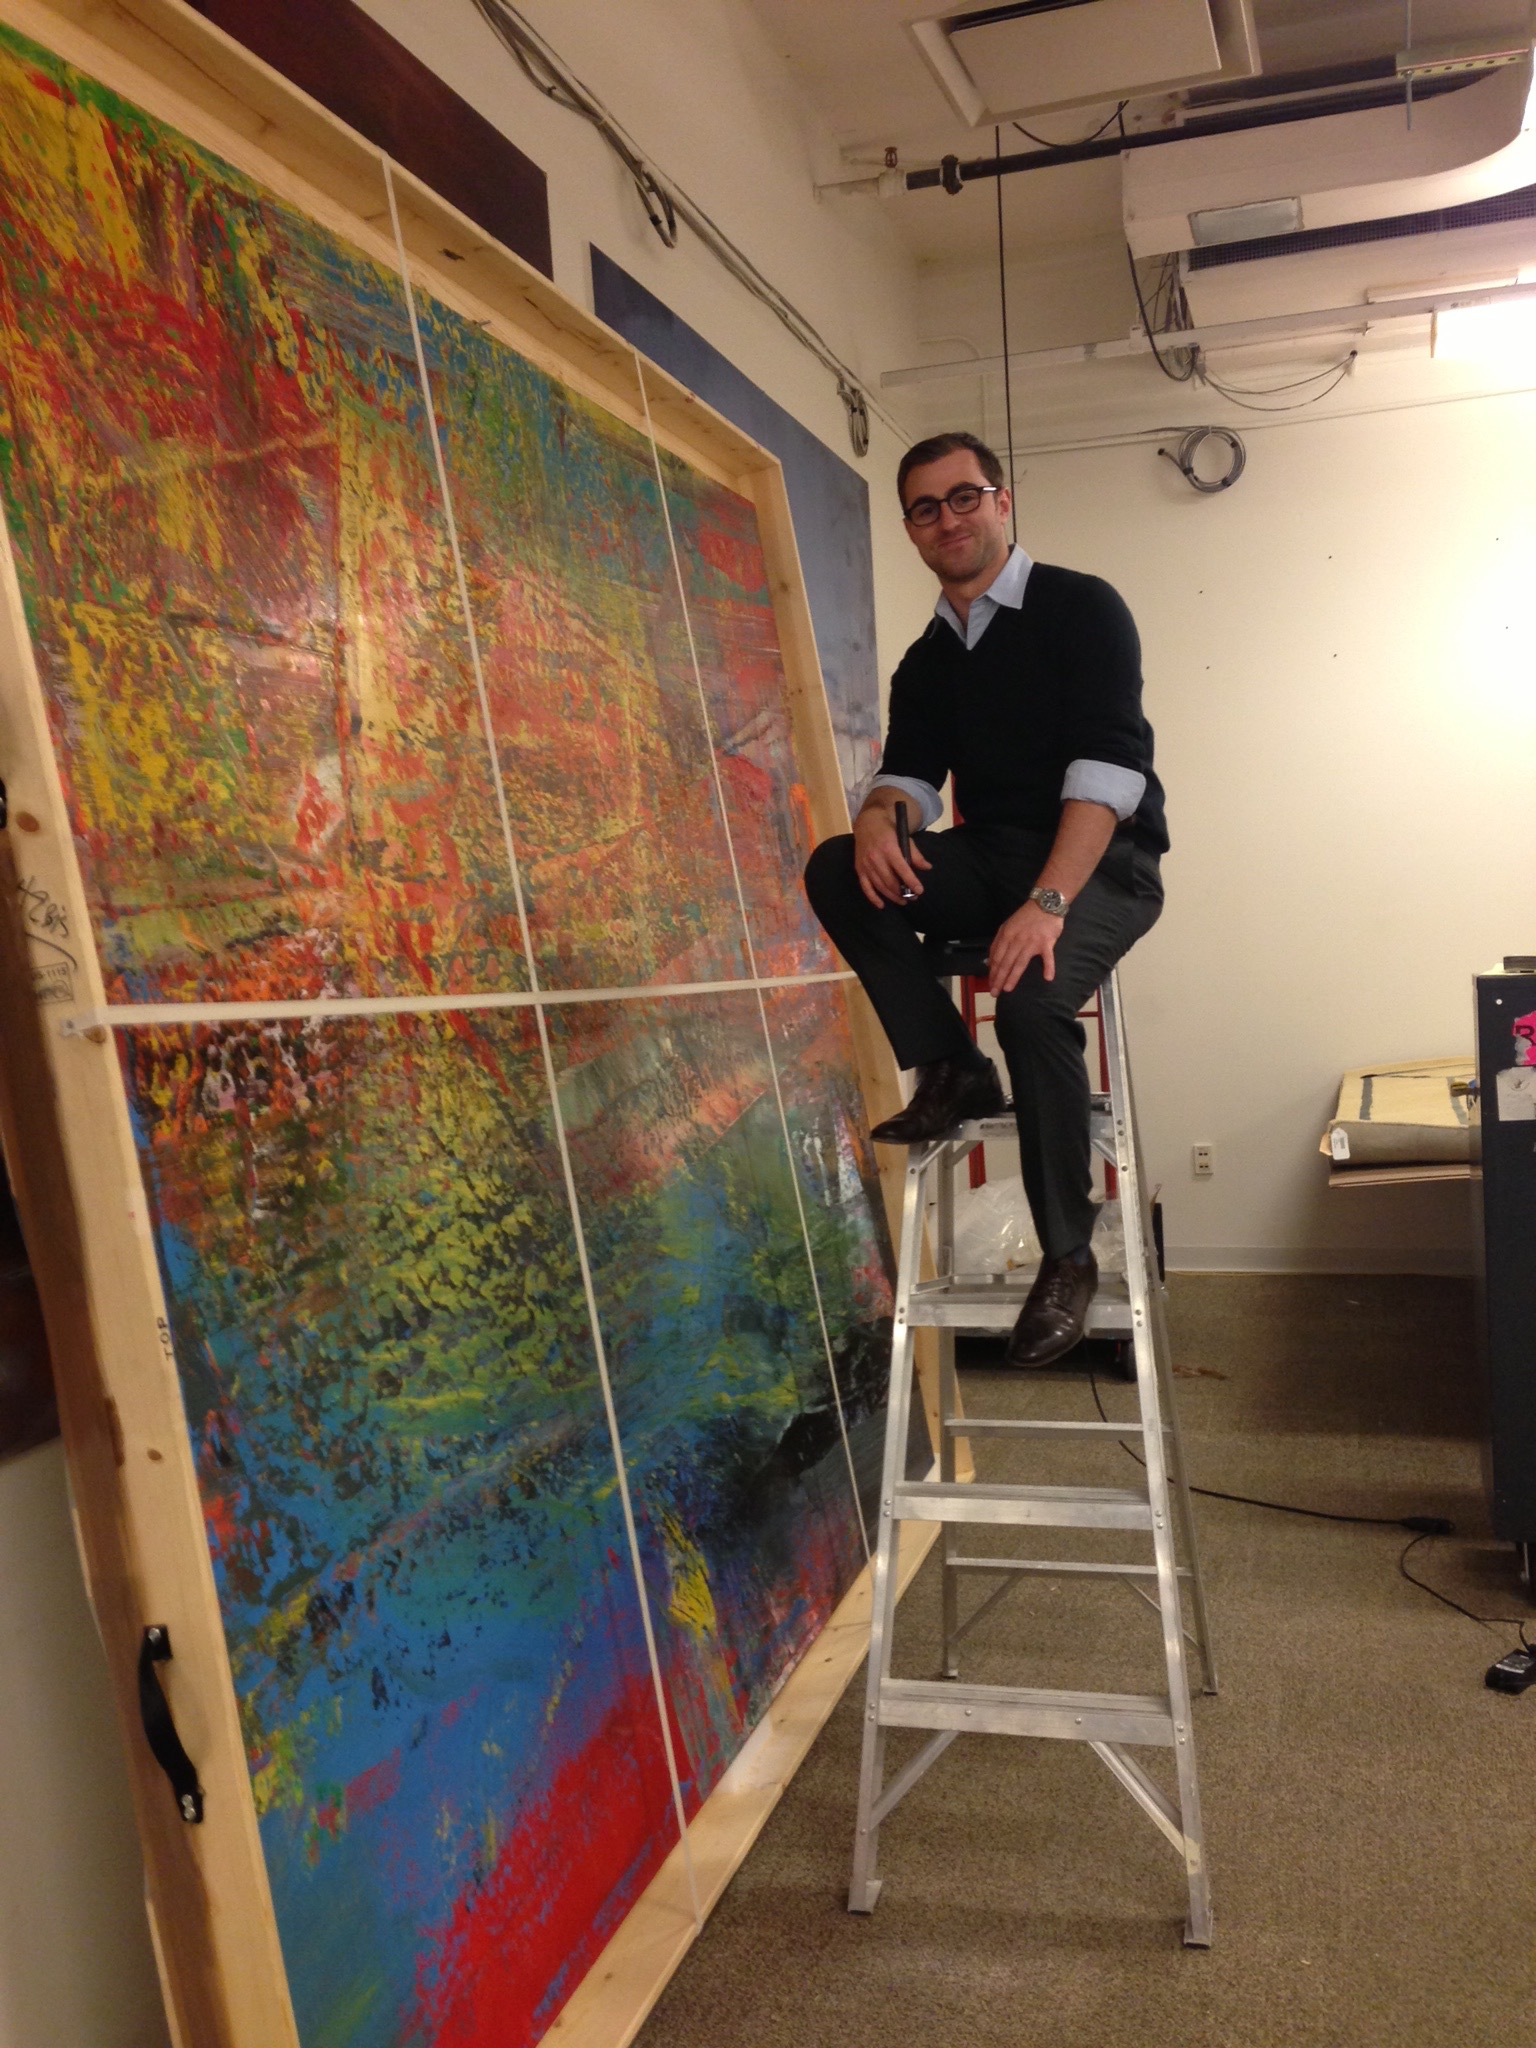 Nick Tatti circa 2014 writing a condition report on a painting by Gerhard Richer.